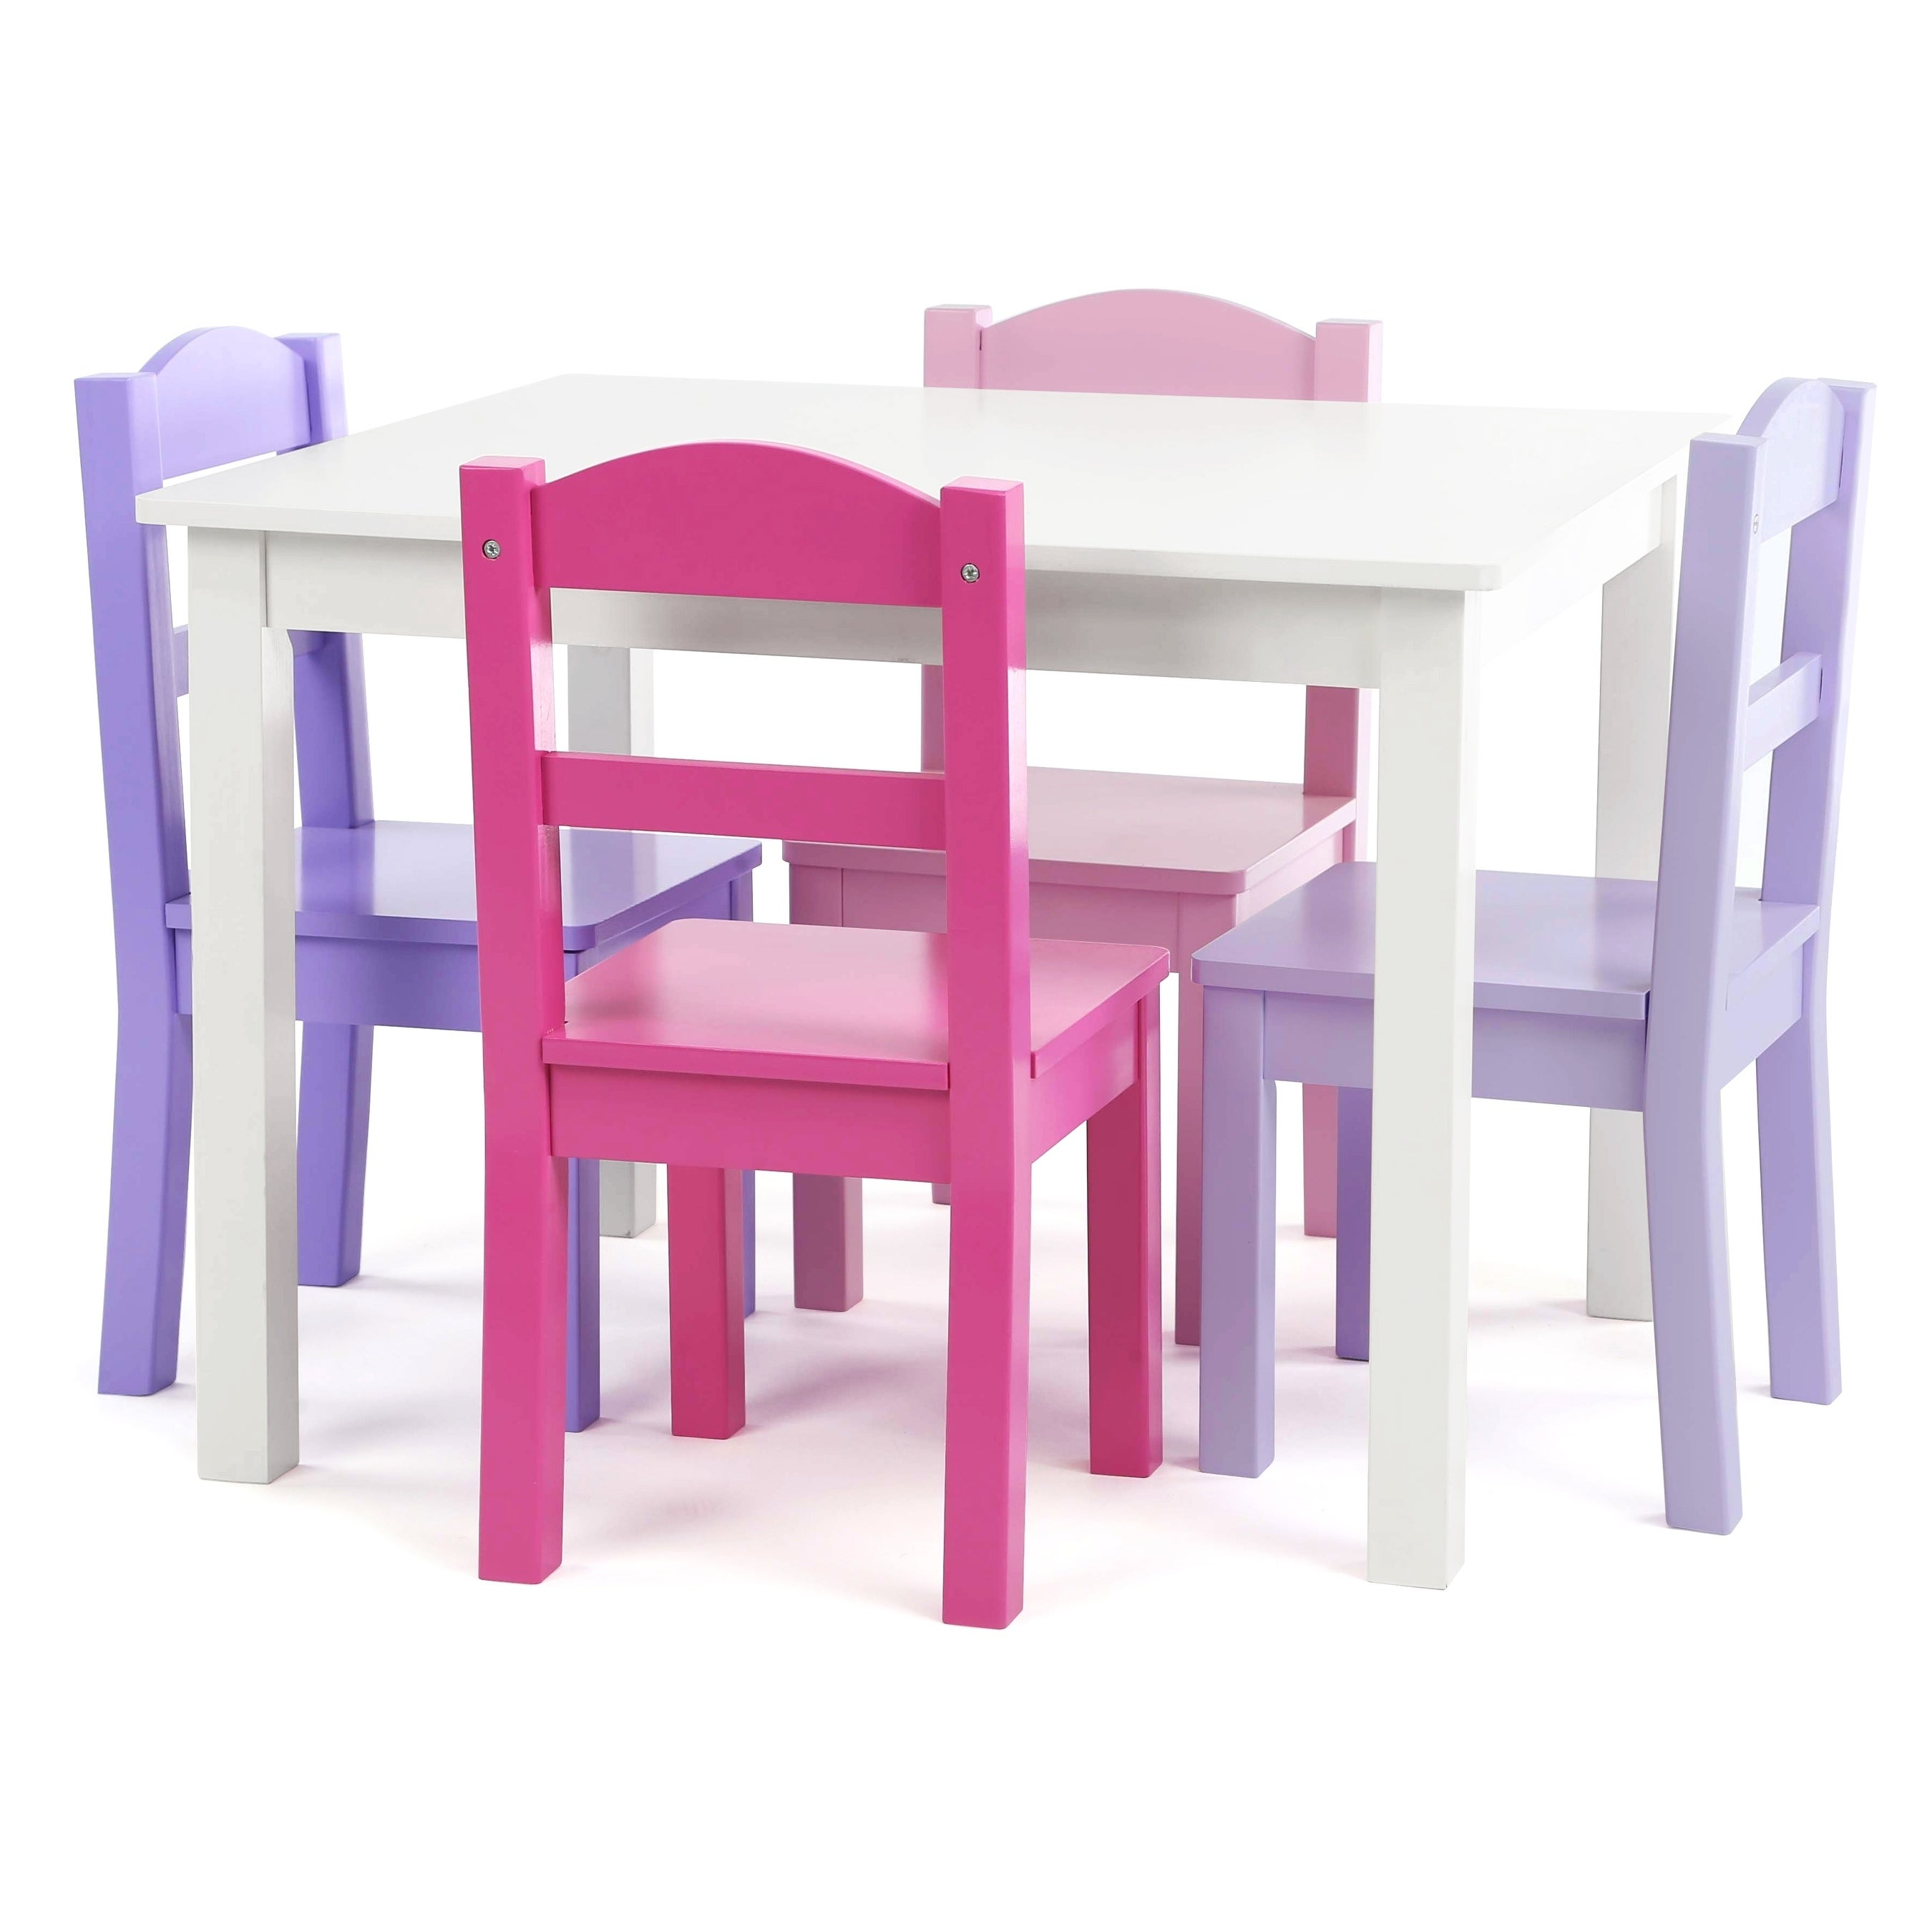 Forever 5-Piece Wood Kids Table u0026 Chairs Set in White/Purpleu0026Pink  sc 1 st  Overstock.com & Buy Kidsu0027 Table u0026 Chair Sets Online at Overstock | Our Best Kids ...